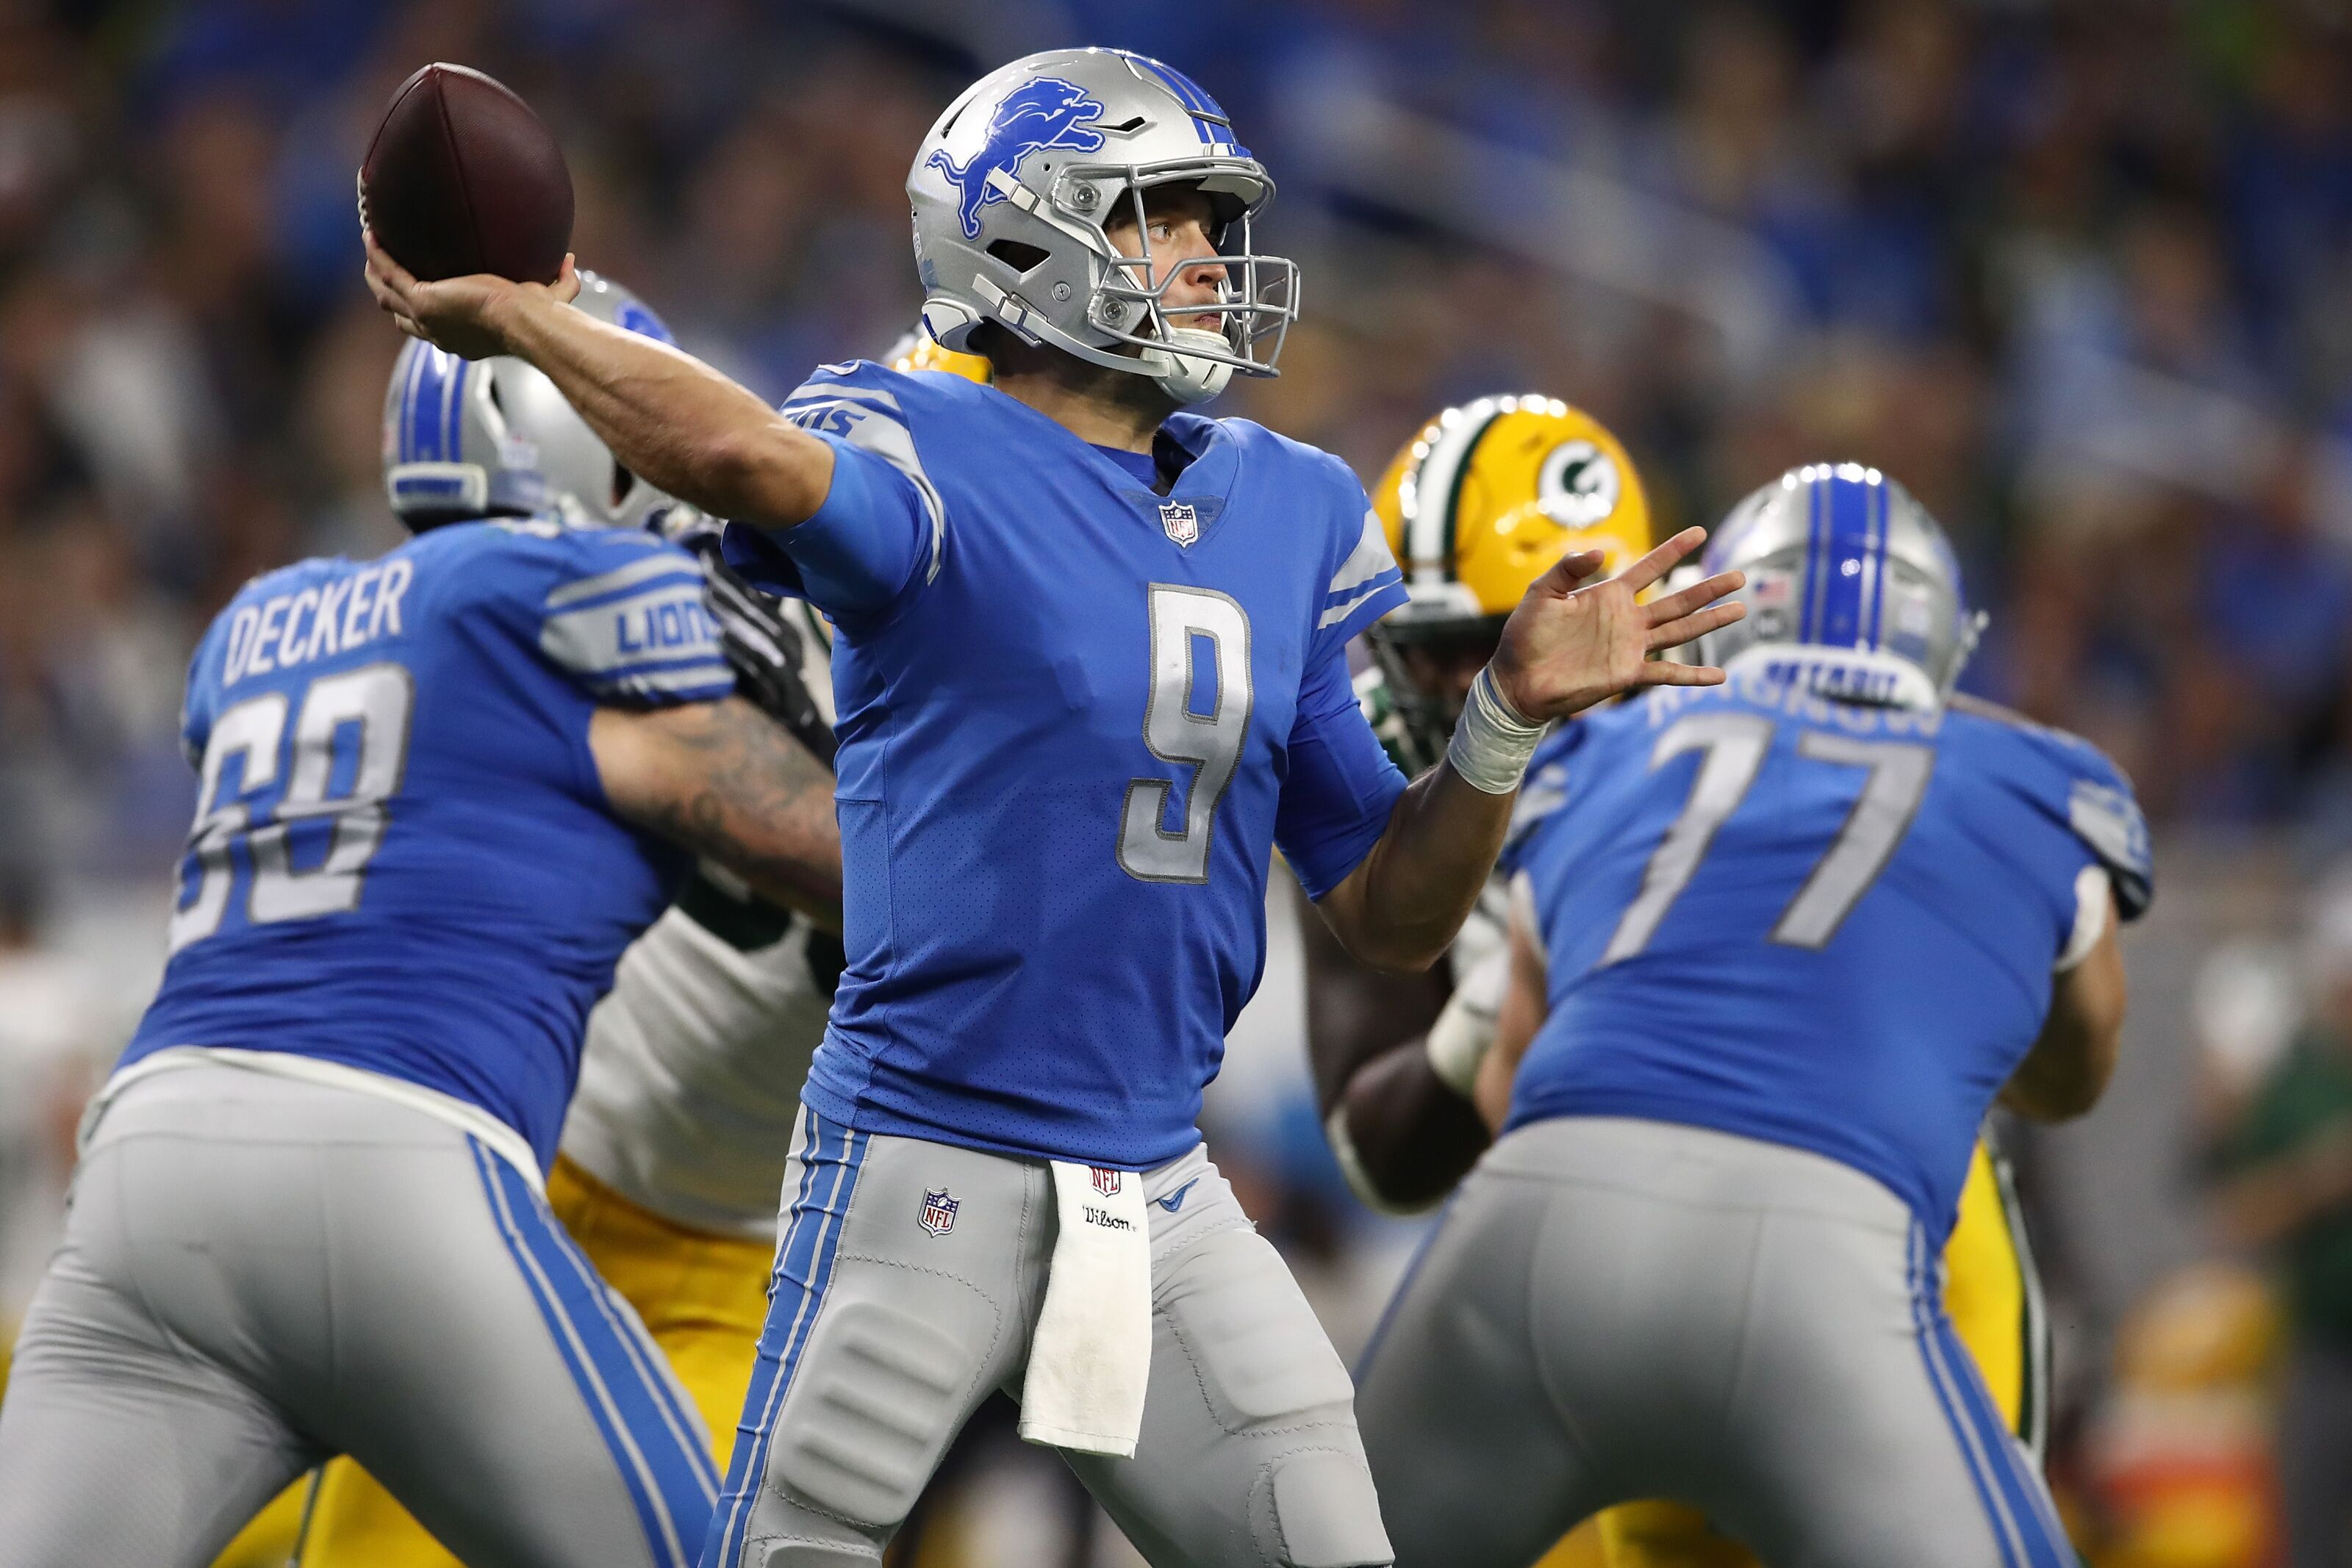 Green Bay Packers 2019 opponent preview: Detroit Lions